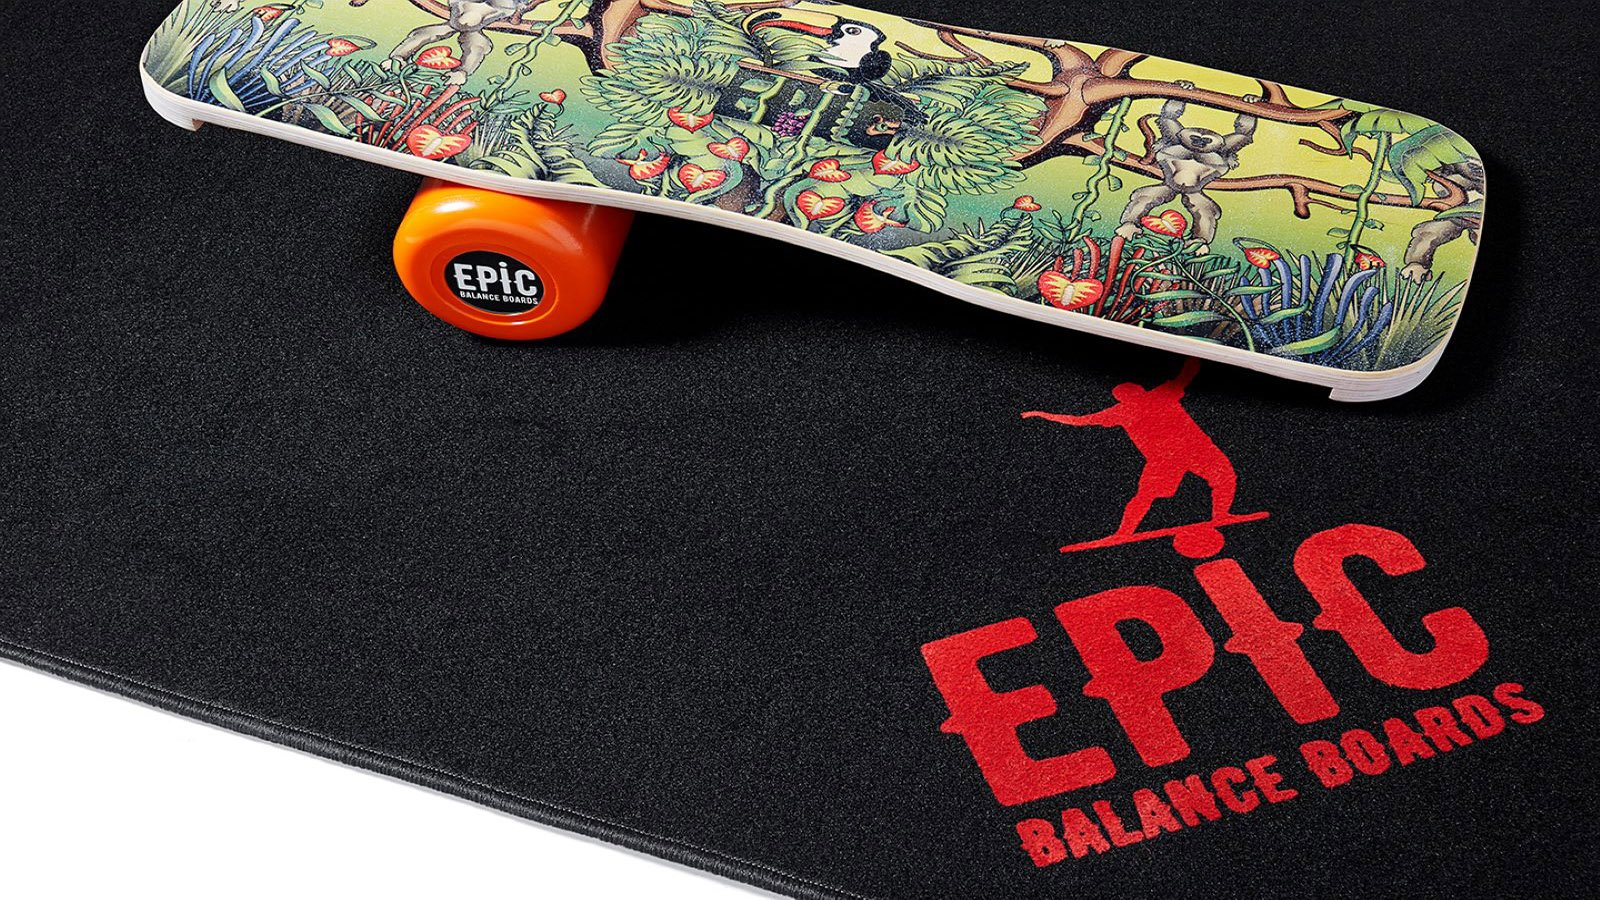 EPIC balance boards header